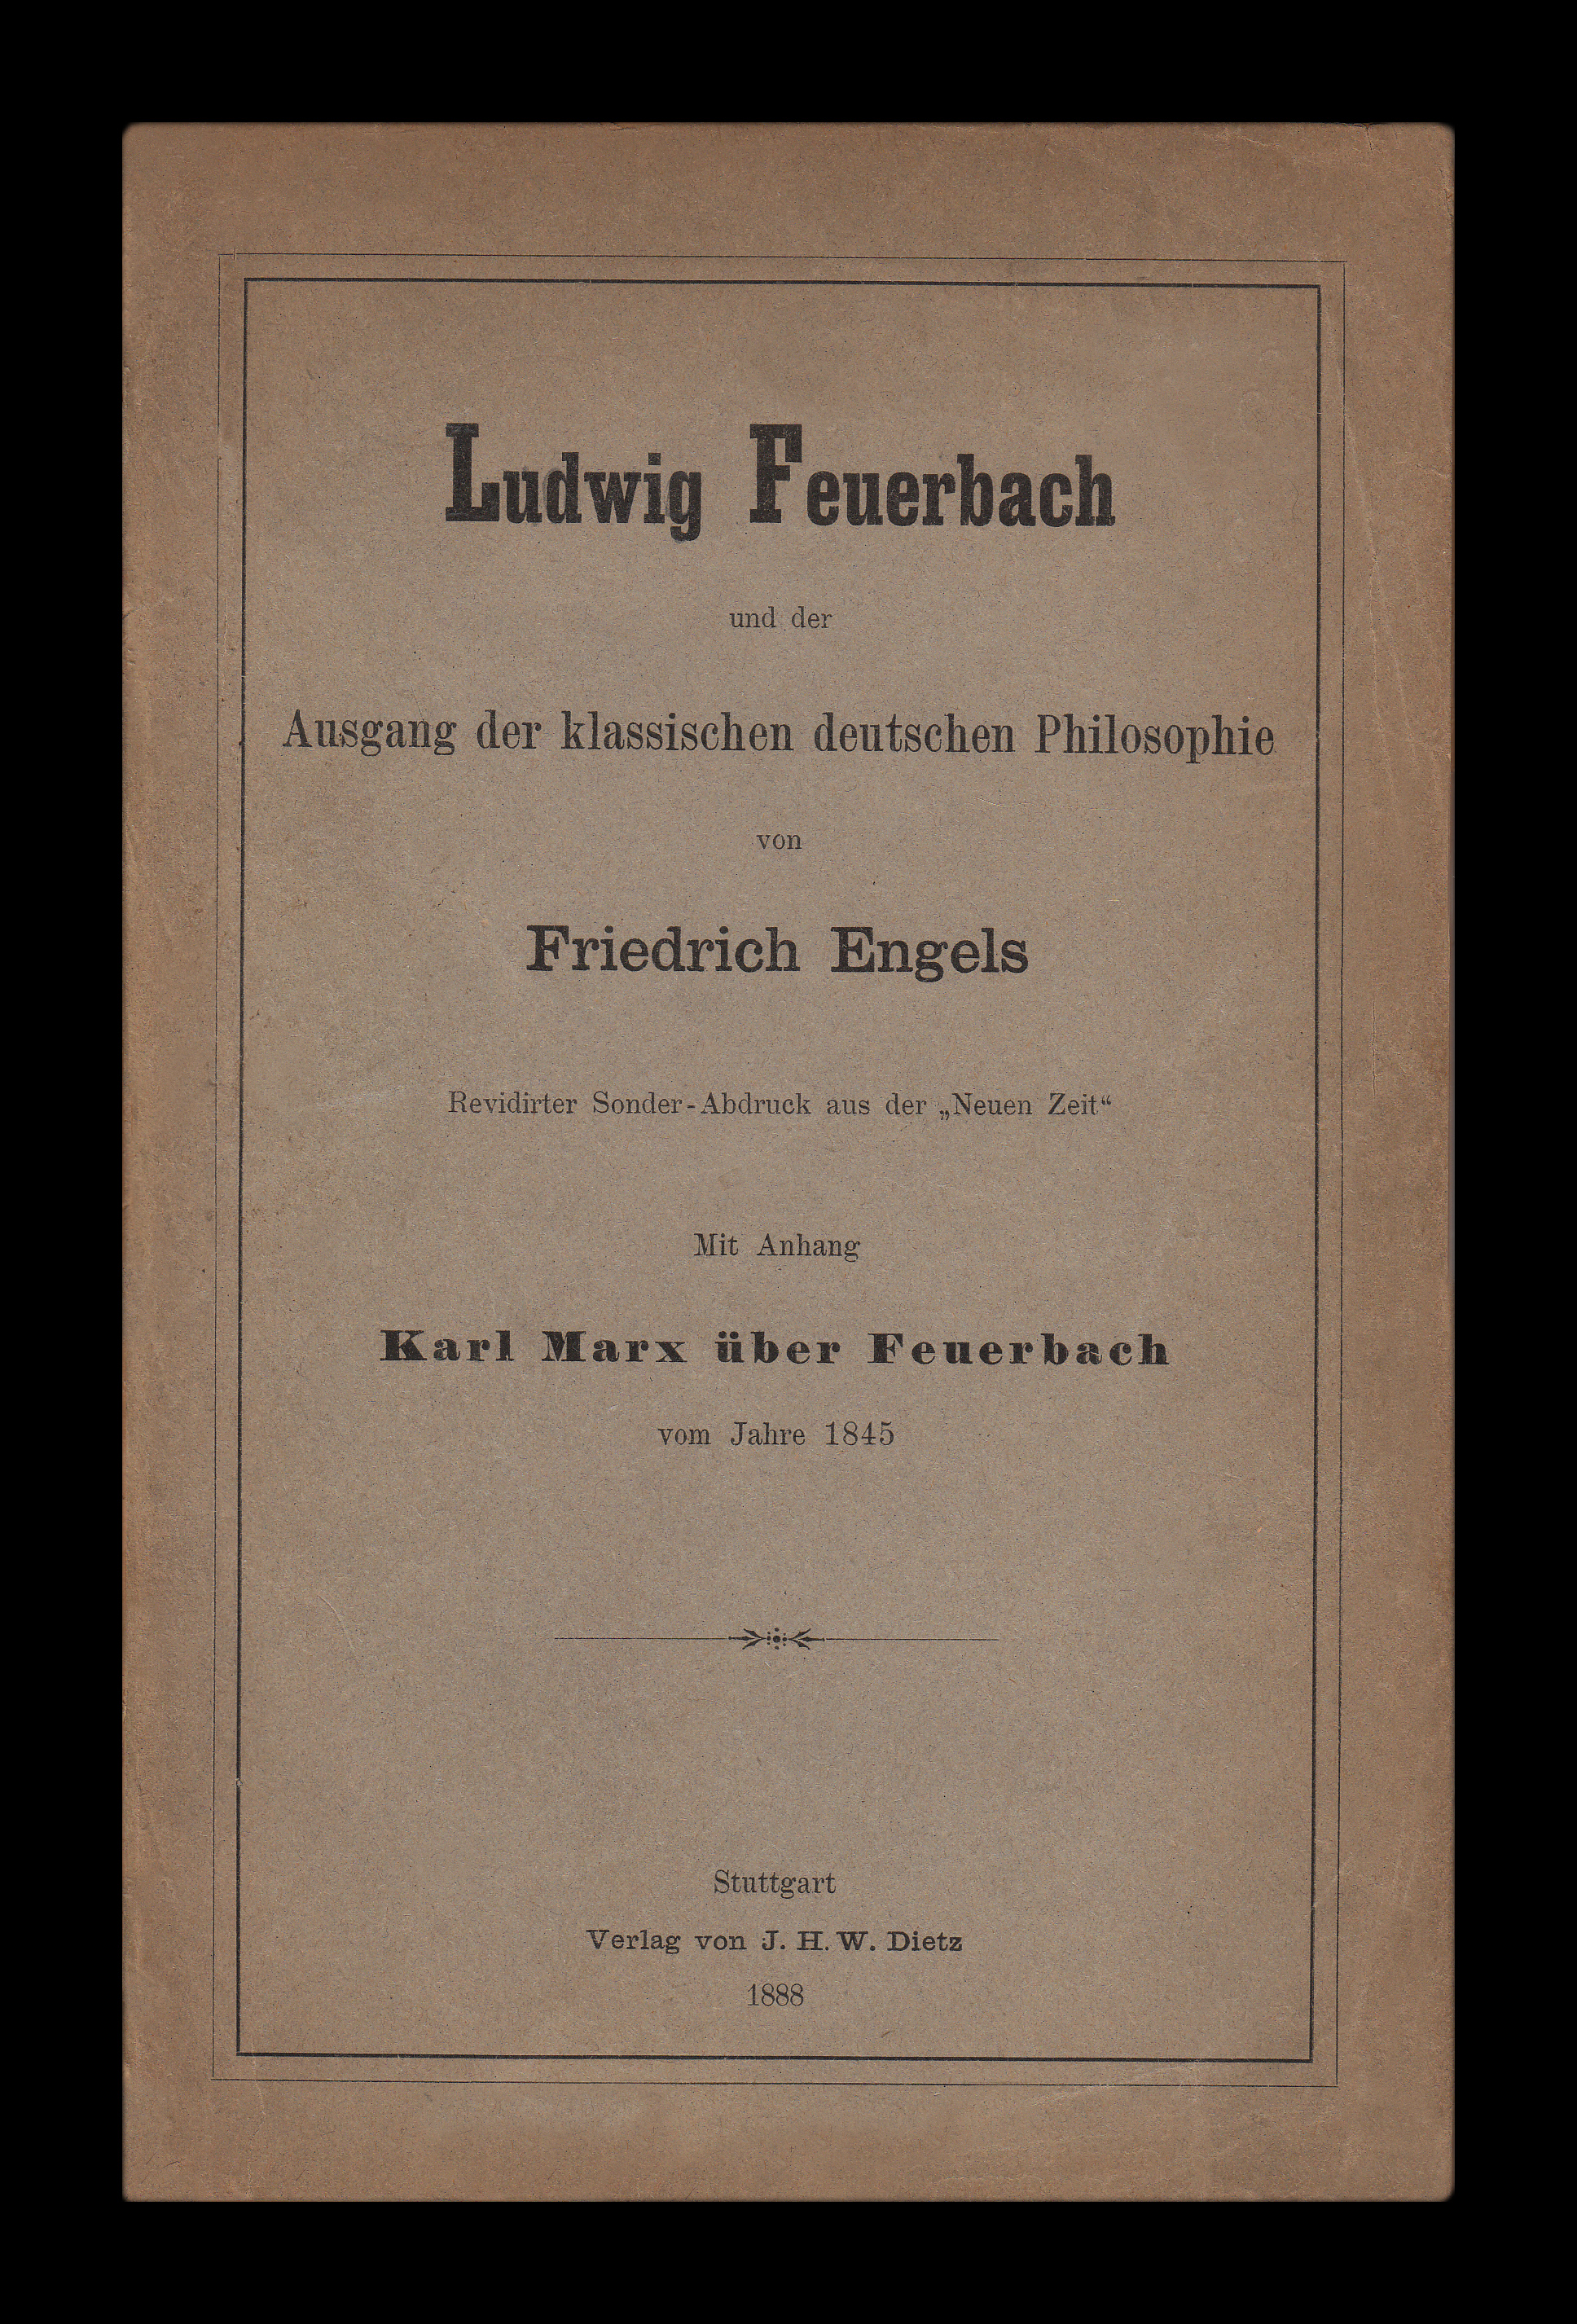 Theses on feuerbach (thesis xi)